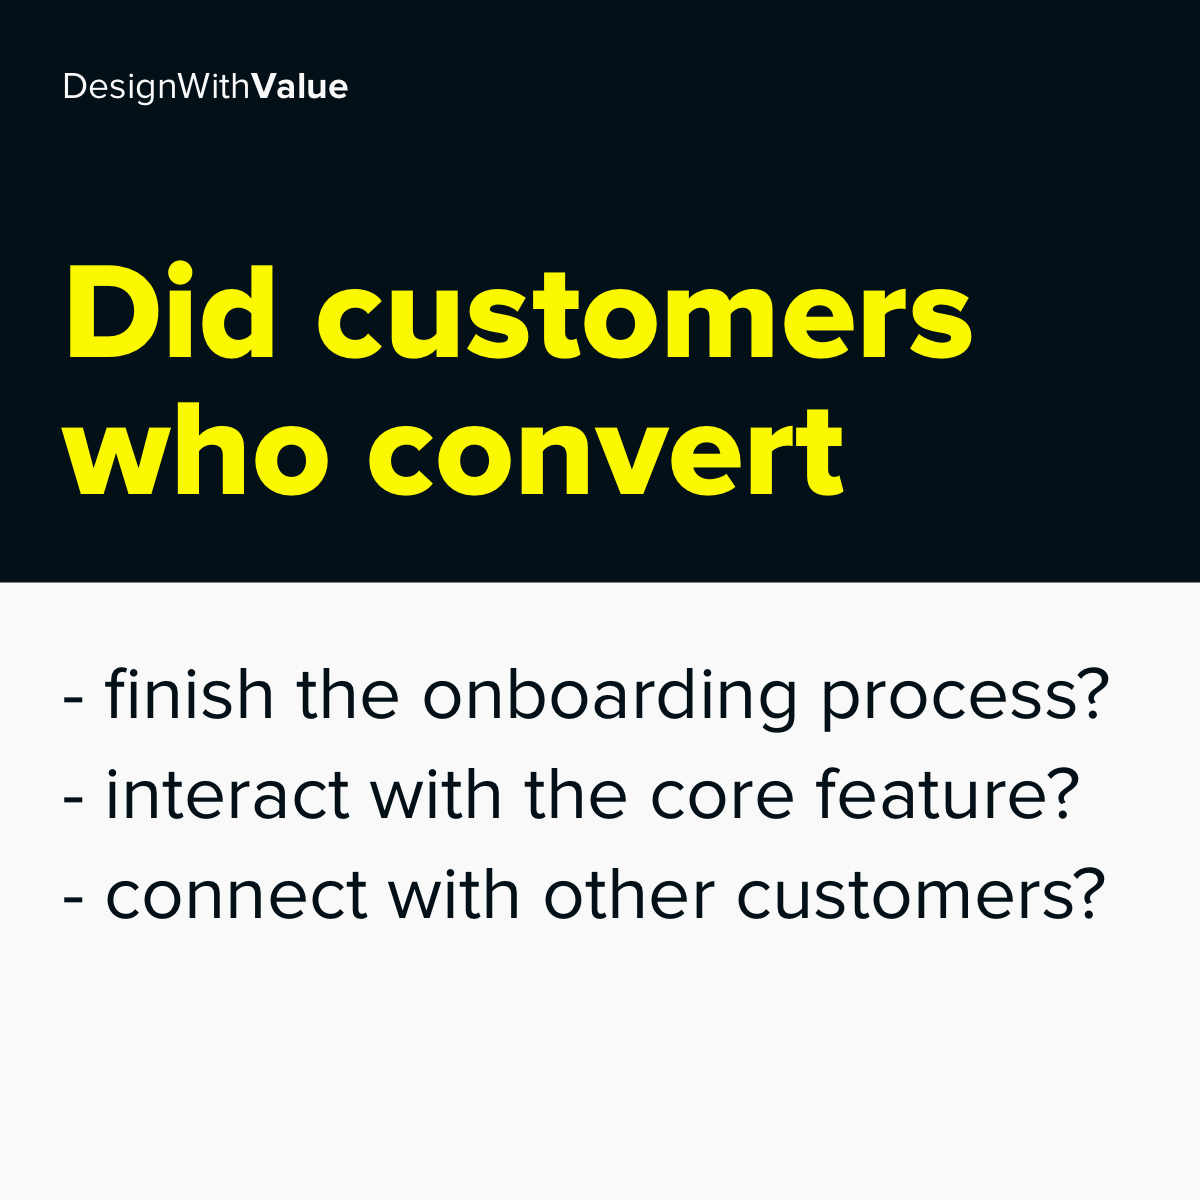 Did customers who convert...finish the onboarding process, interact with the core feature, connect with other customers?